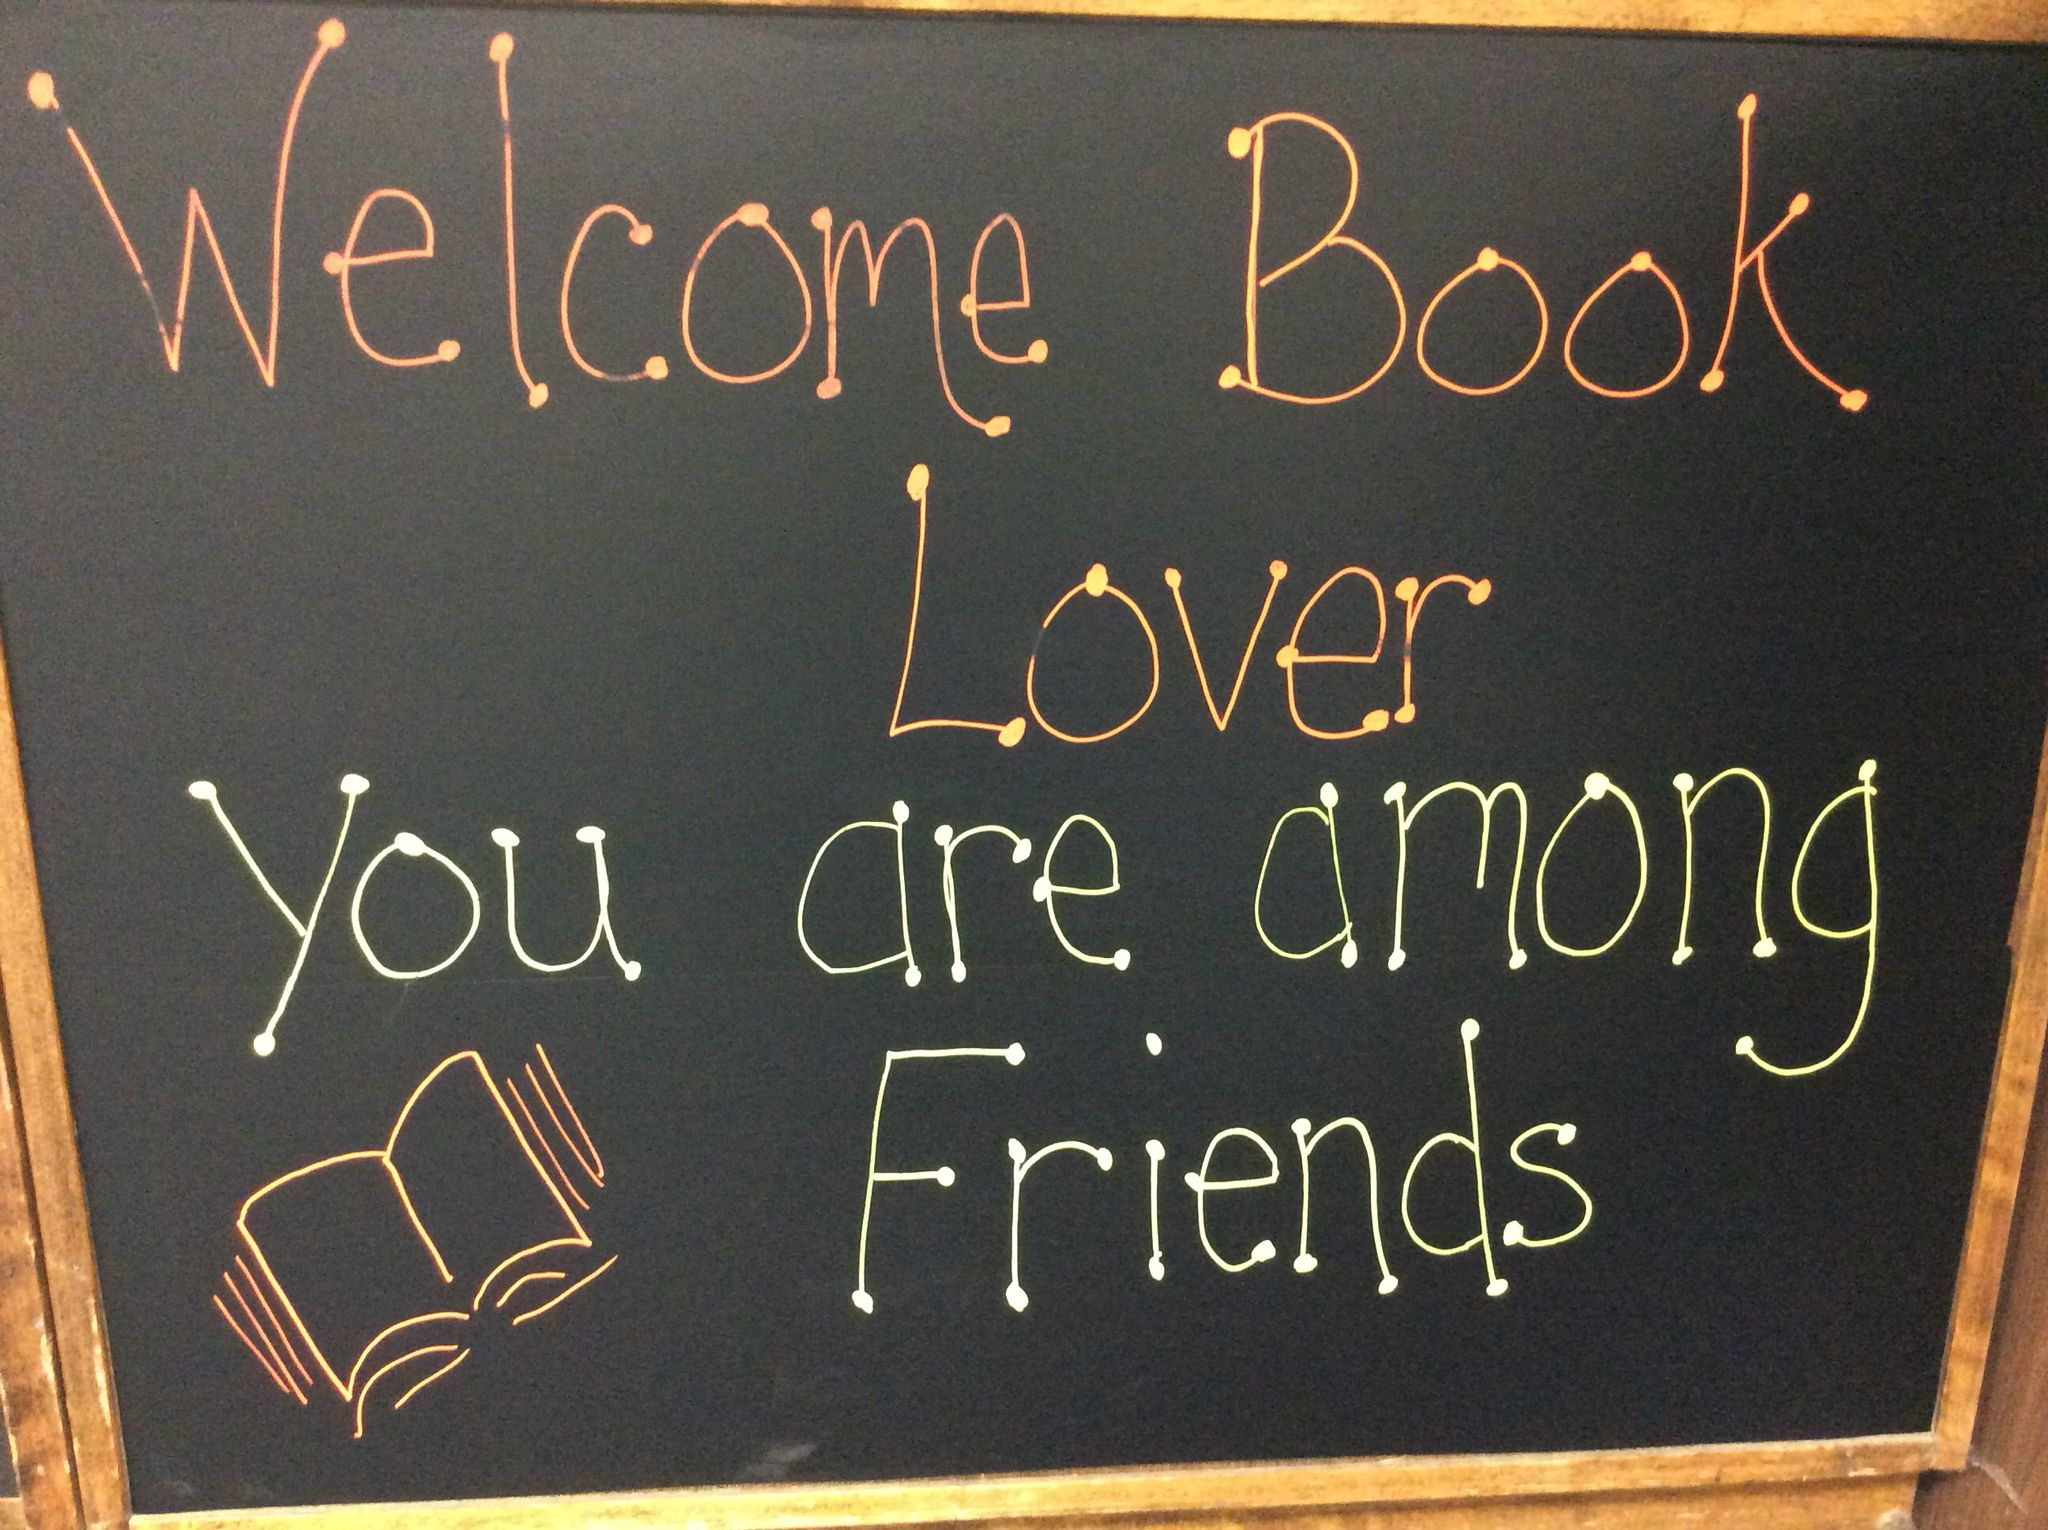 Welcome book lover... You are among friends here at the MUHS library!